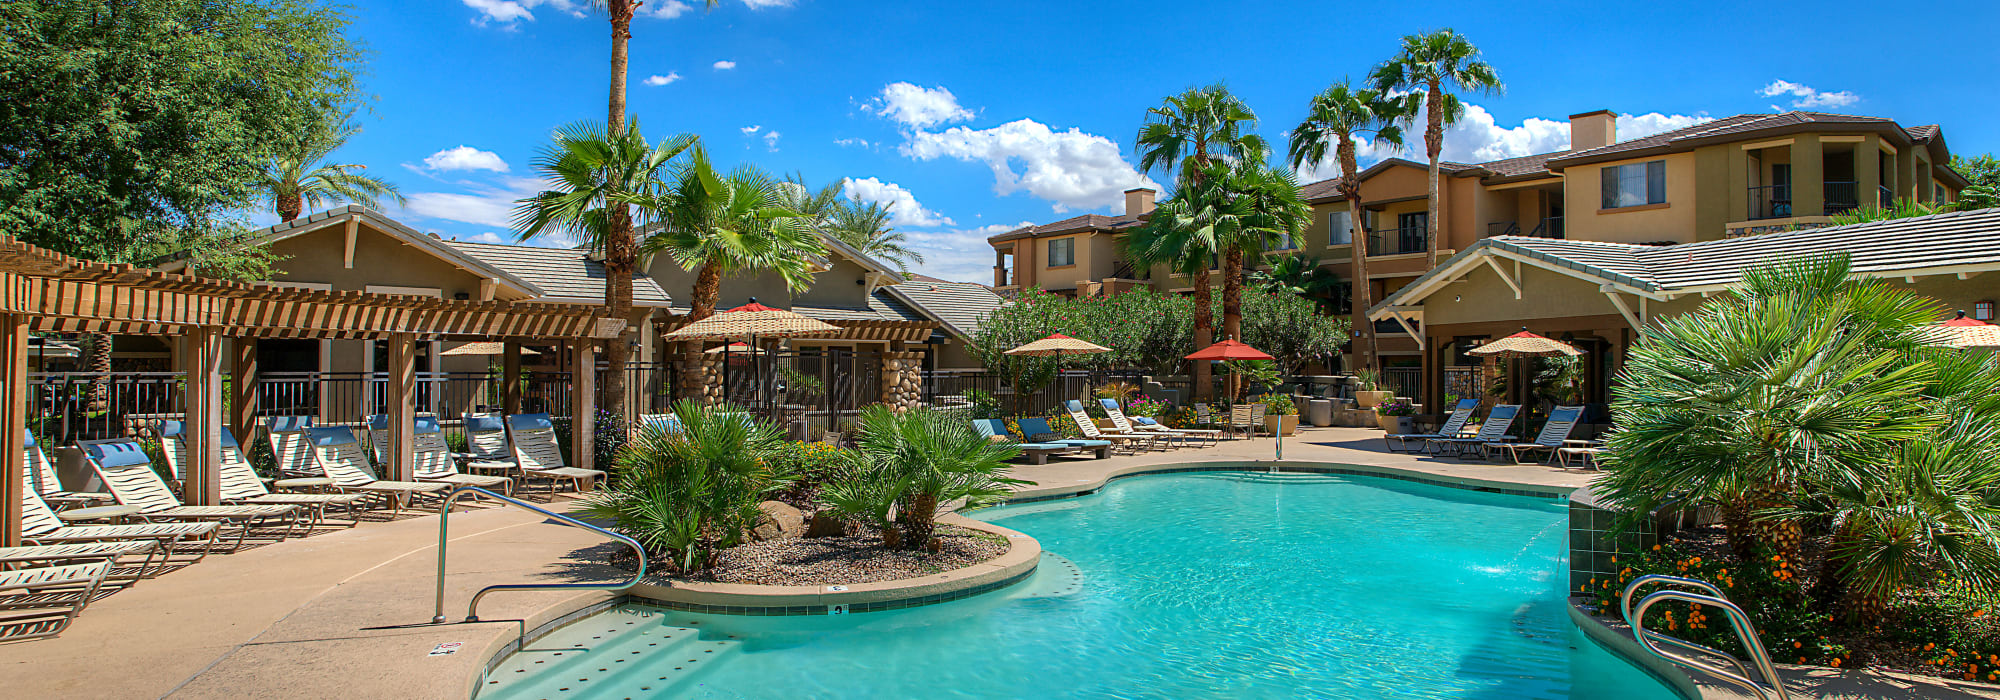 Gorgeous resort swimming pool to Azul at Spectrum in Gilbert, Arizona